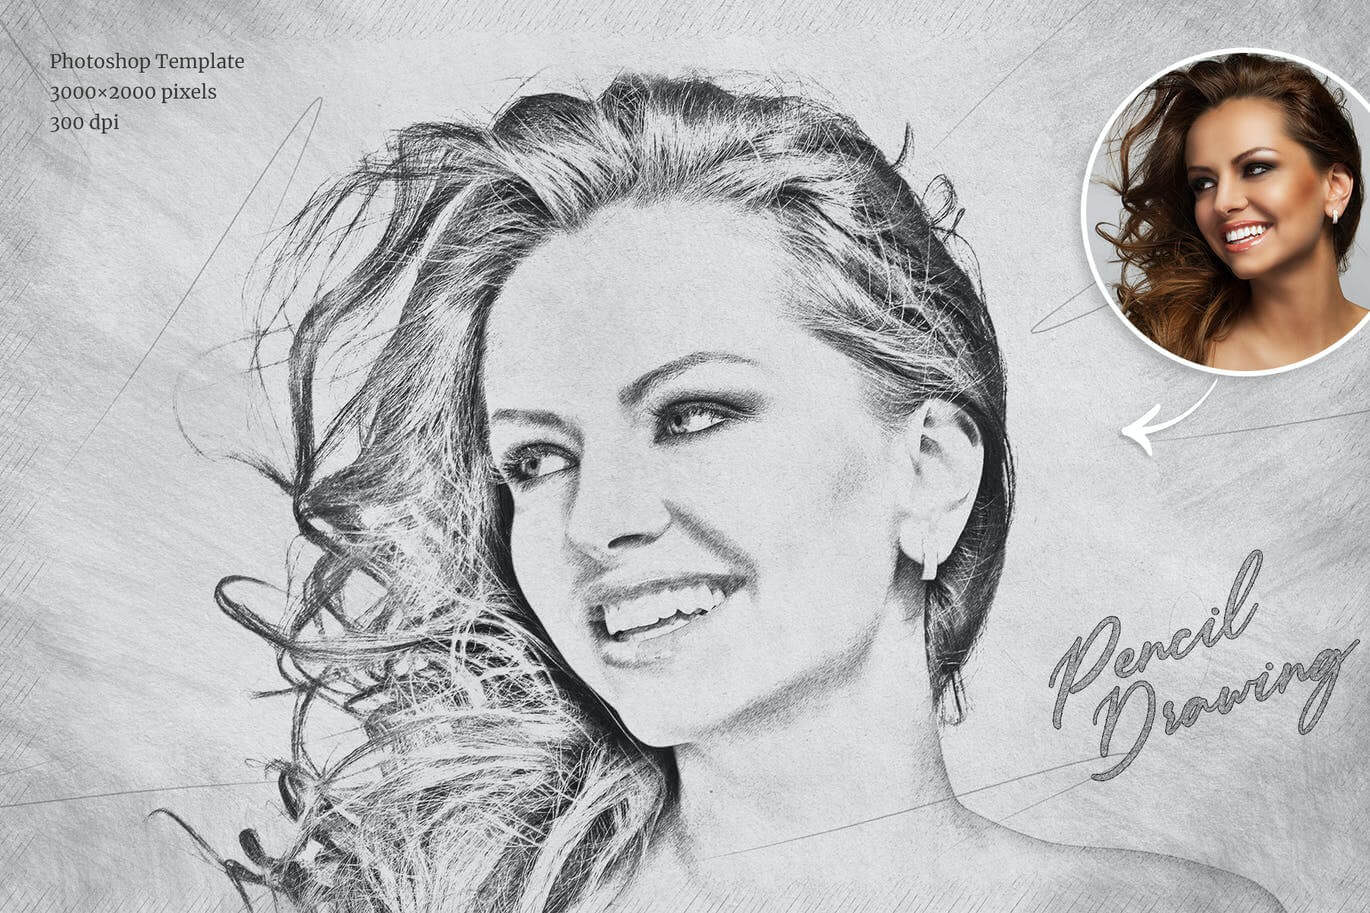 Pencil Drawing Photoshop Template (2)